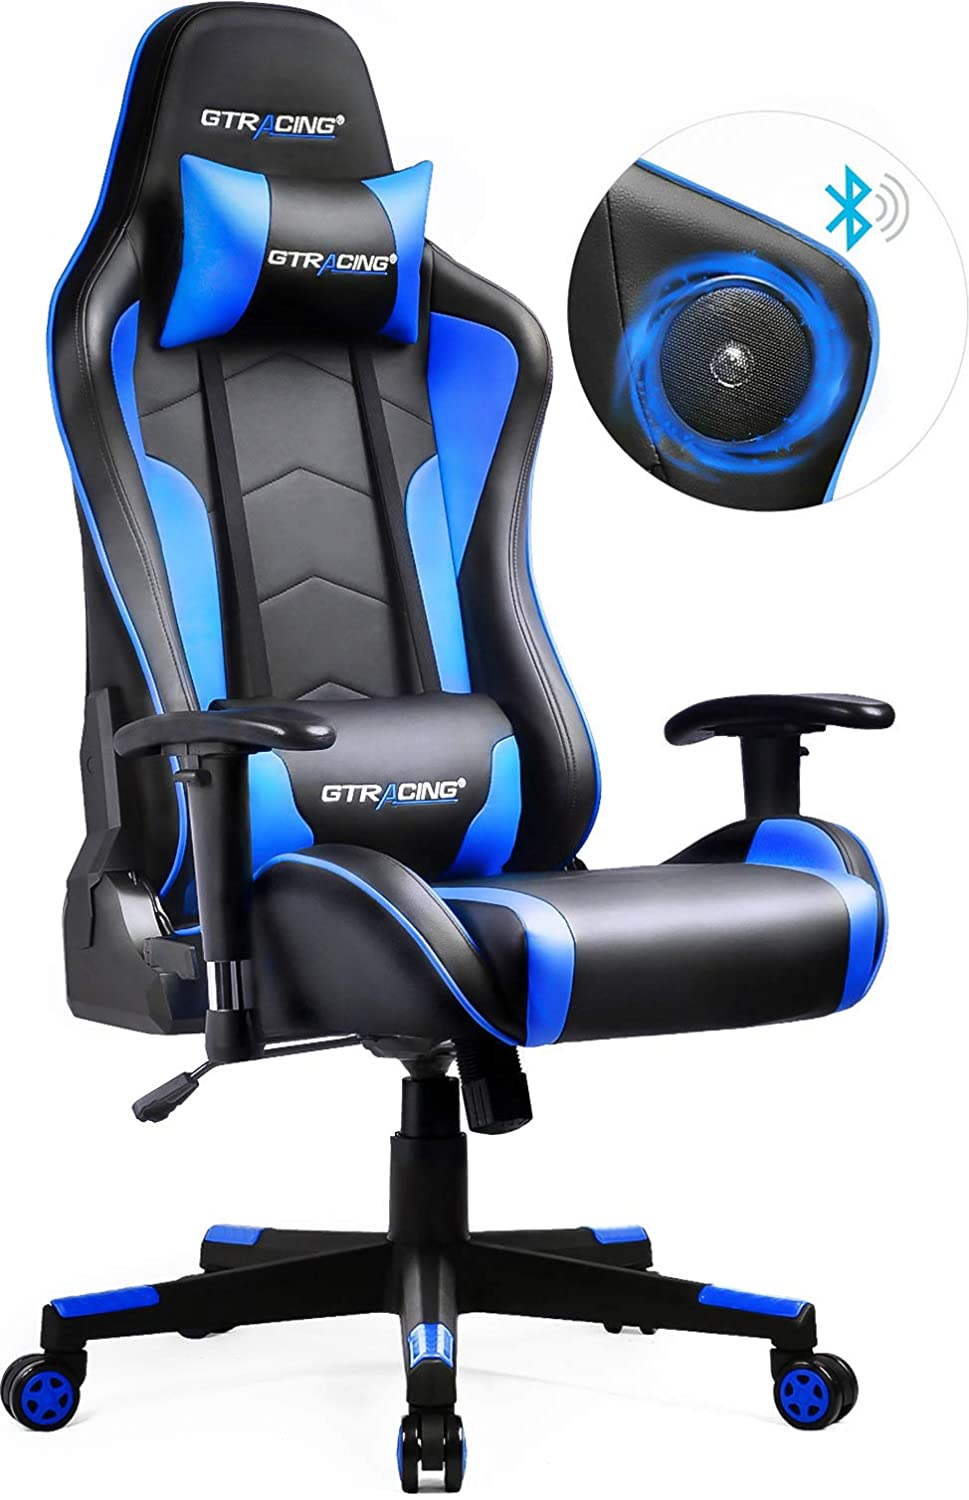 GTRACING Gaming Chair with Bluetooth Speakers Music Video Game Chair Audio Connect Mobile PC PS4 Patented Design Heavy Duty Ergonomic Office Computer Desk Chair GT890M Blue